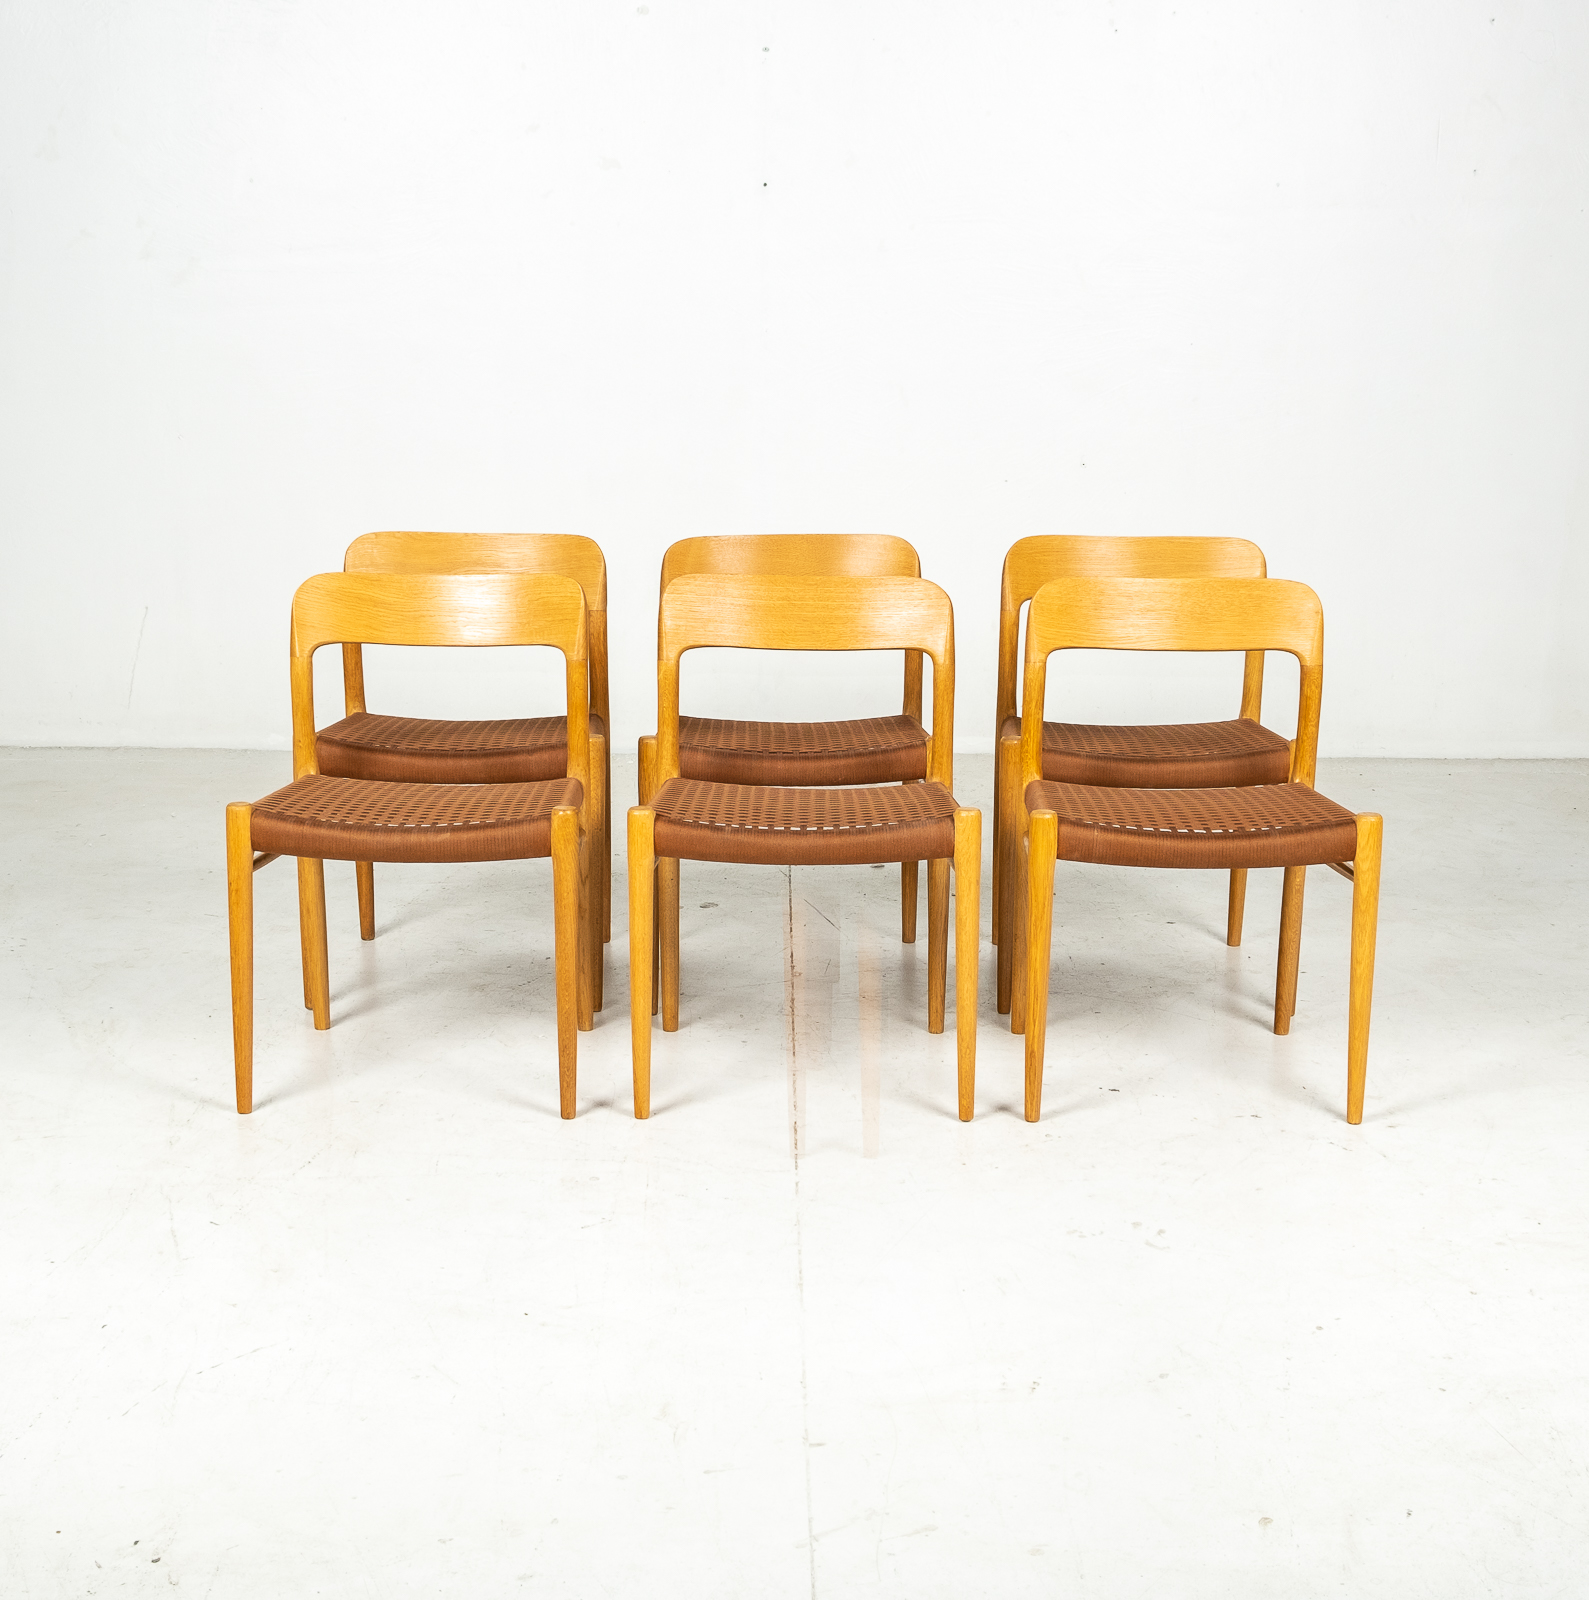 Set Of 6 Model 75 Dining Chairs By Neils Moller For J. L. Moller Mobelfabrik In Oak With Wool Cord, 1960s, Denmark2